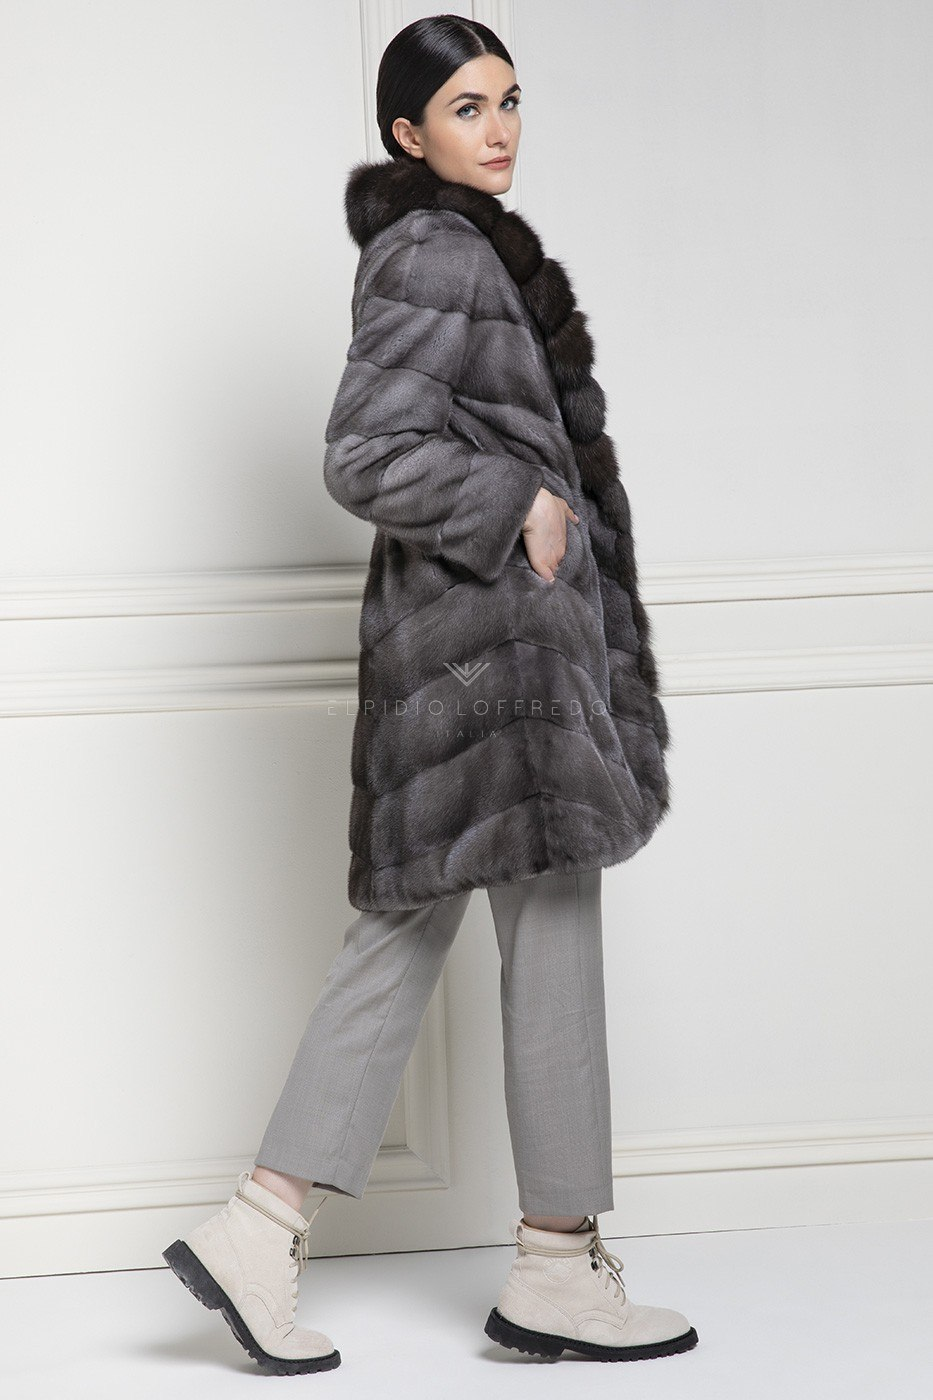 Blue Iris Female Mink with Barguzinsky Russian Sable and Shawl collar